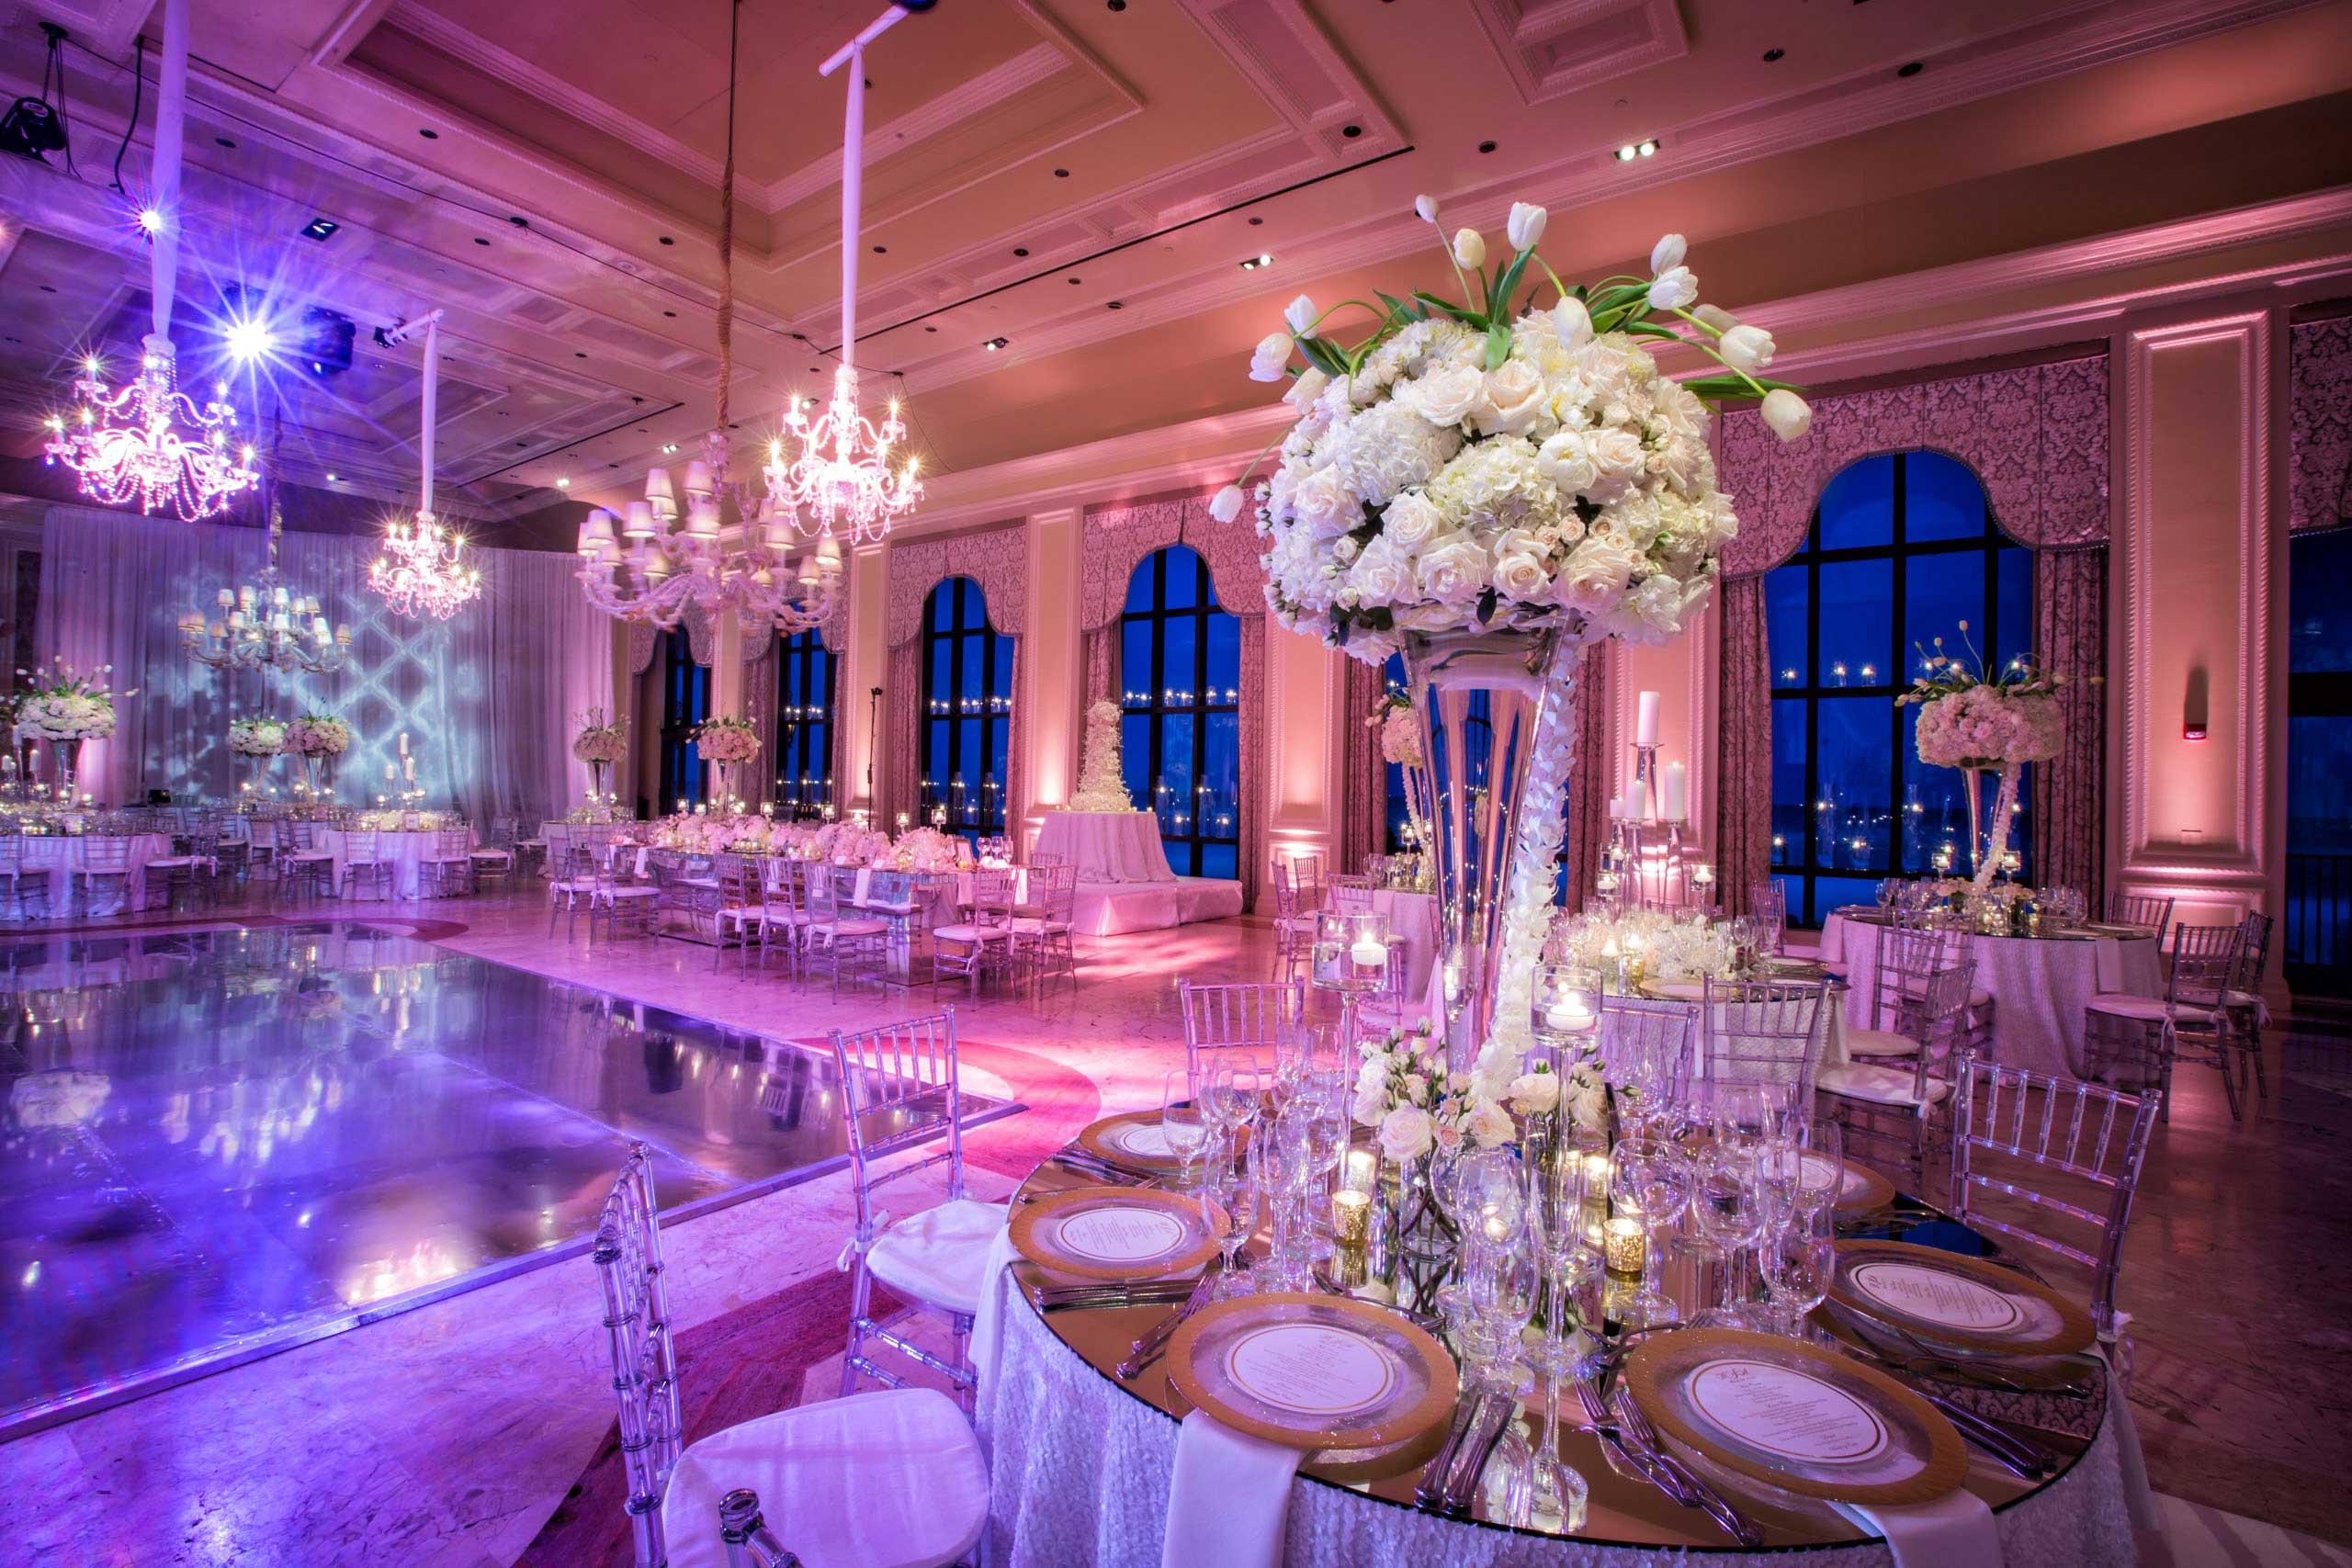 How To Make Pink And Blue Elements Work In Your Wedding